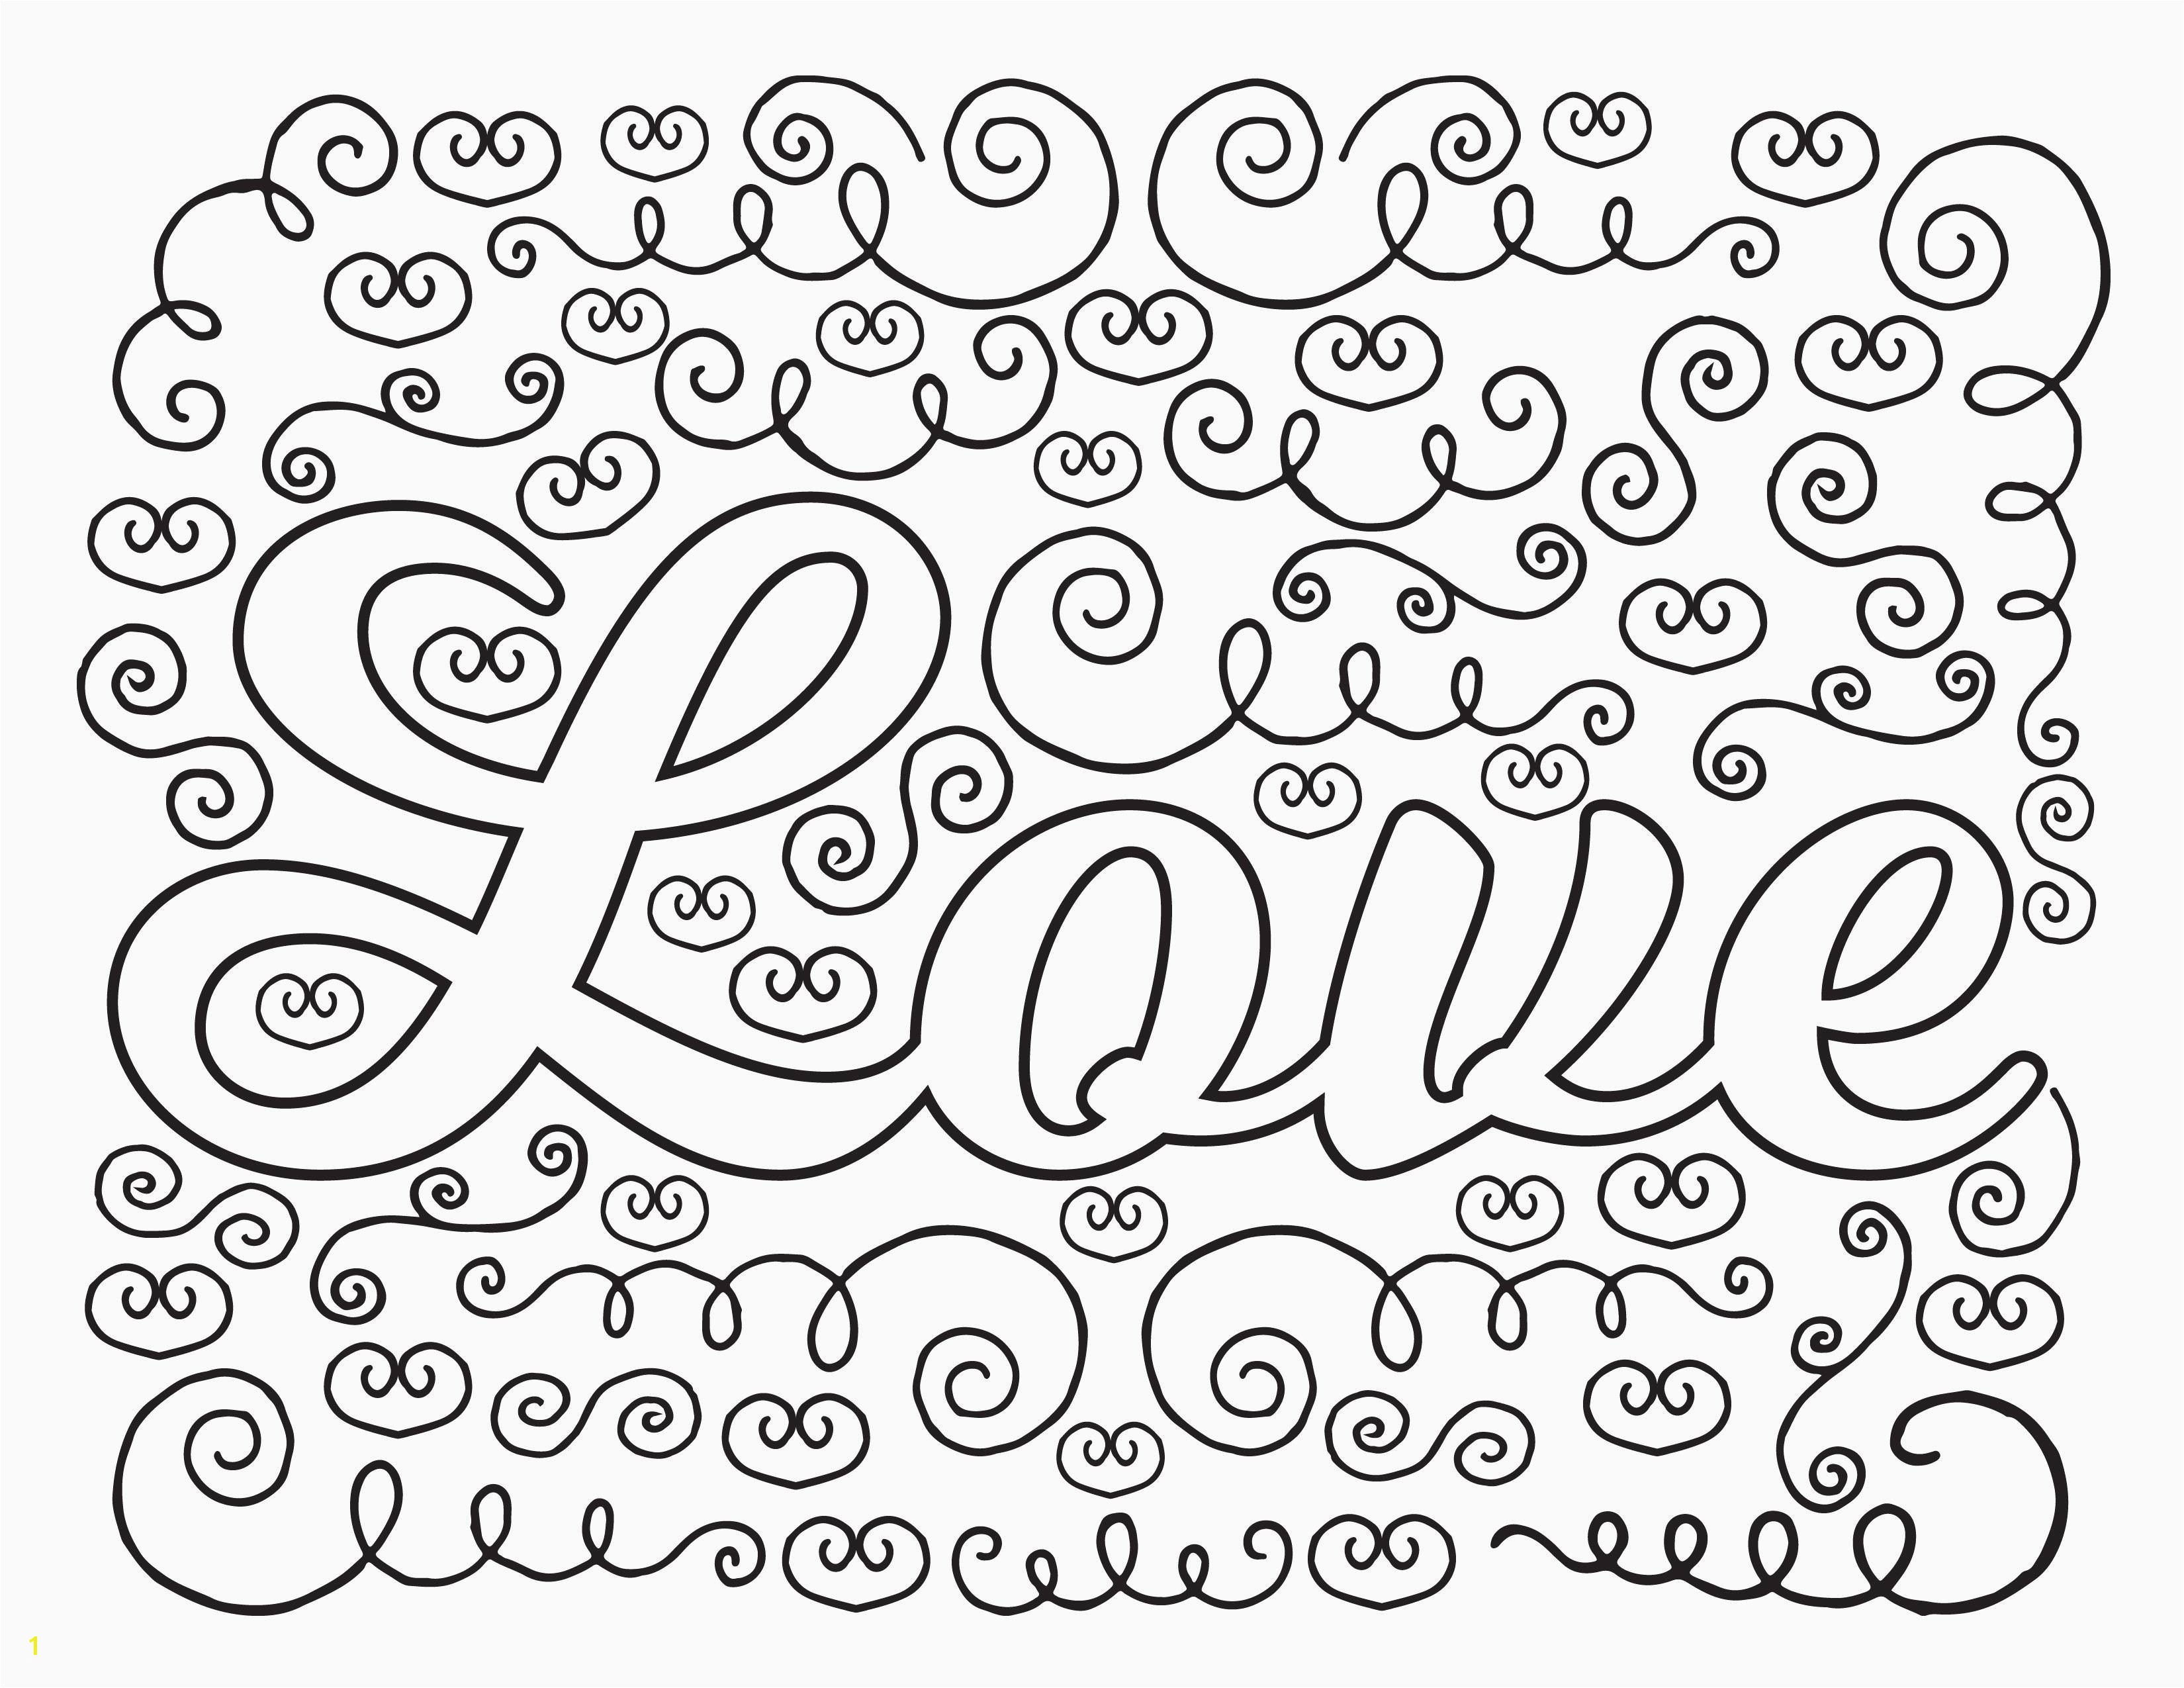 Quilt Blocks Coloring Pages to Print Free Coloring Quilt Patterns Archives Katesgrove